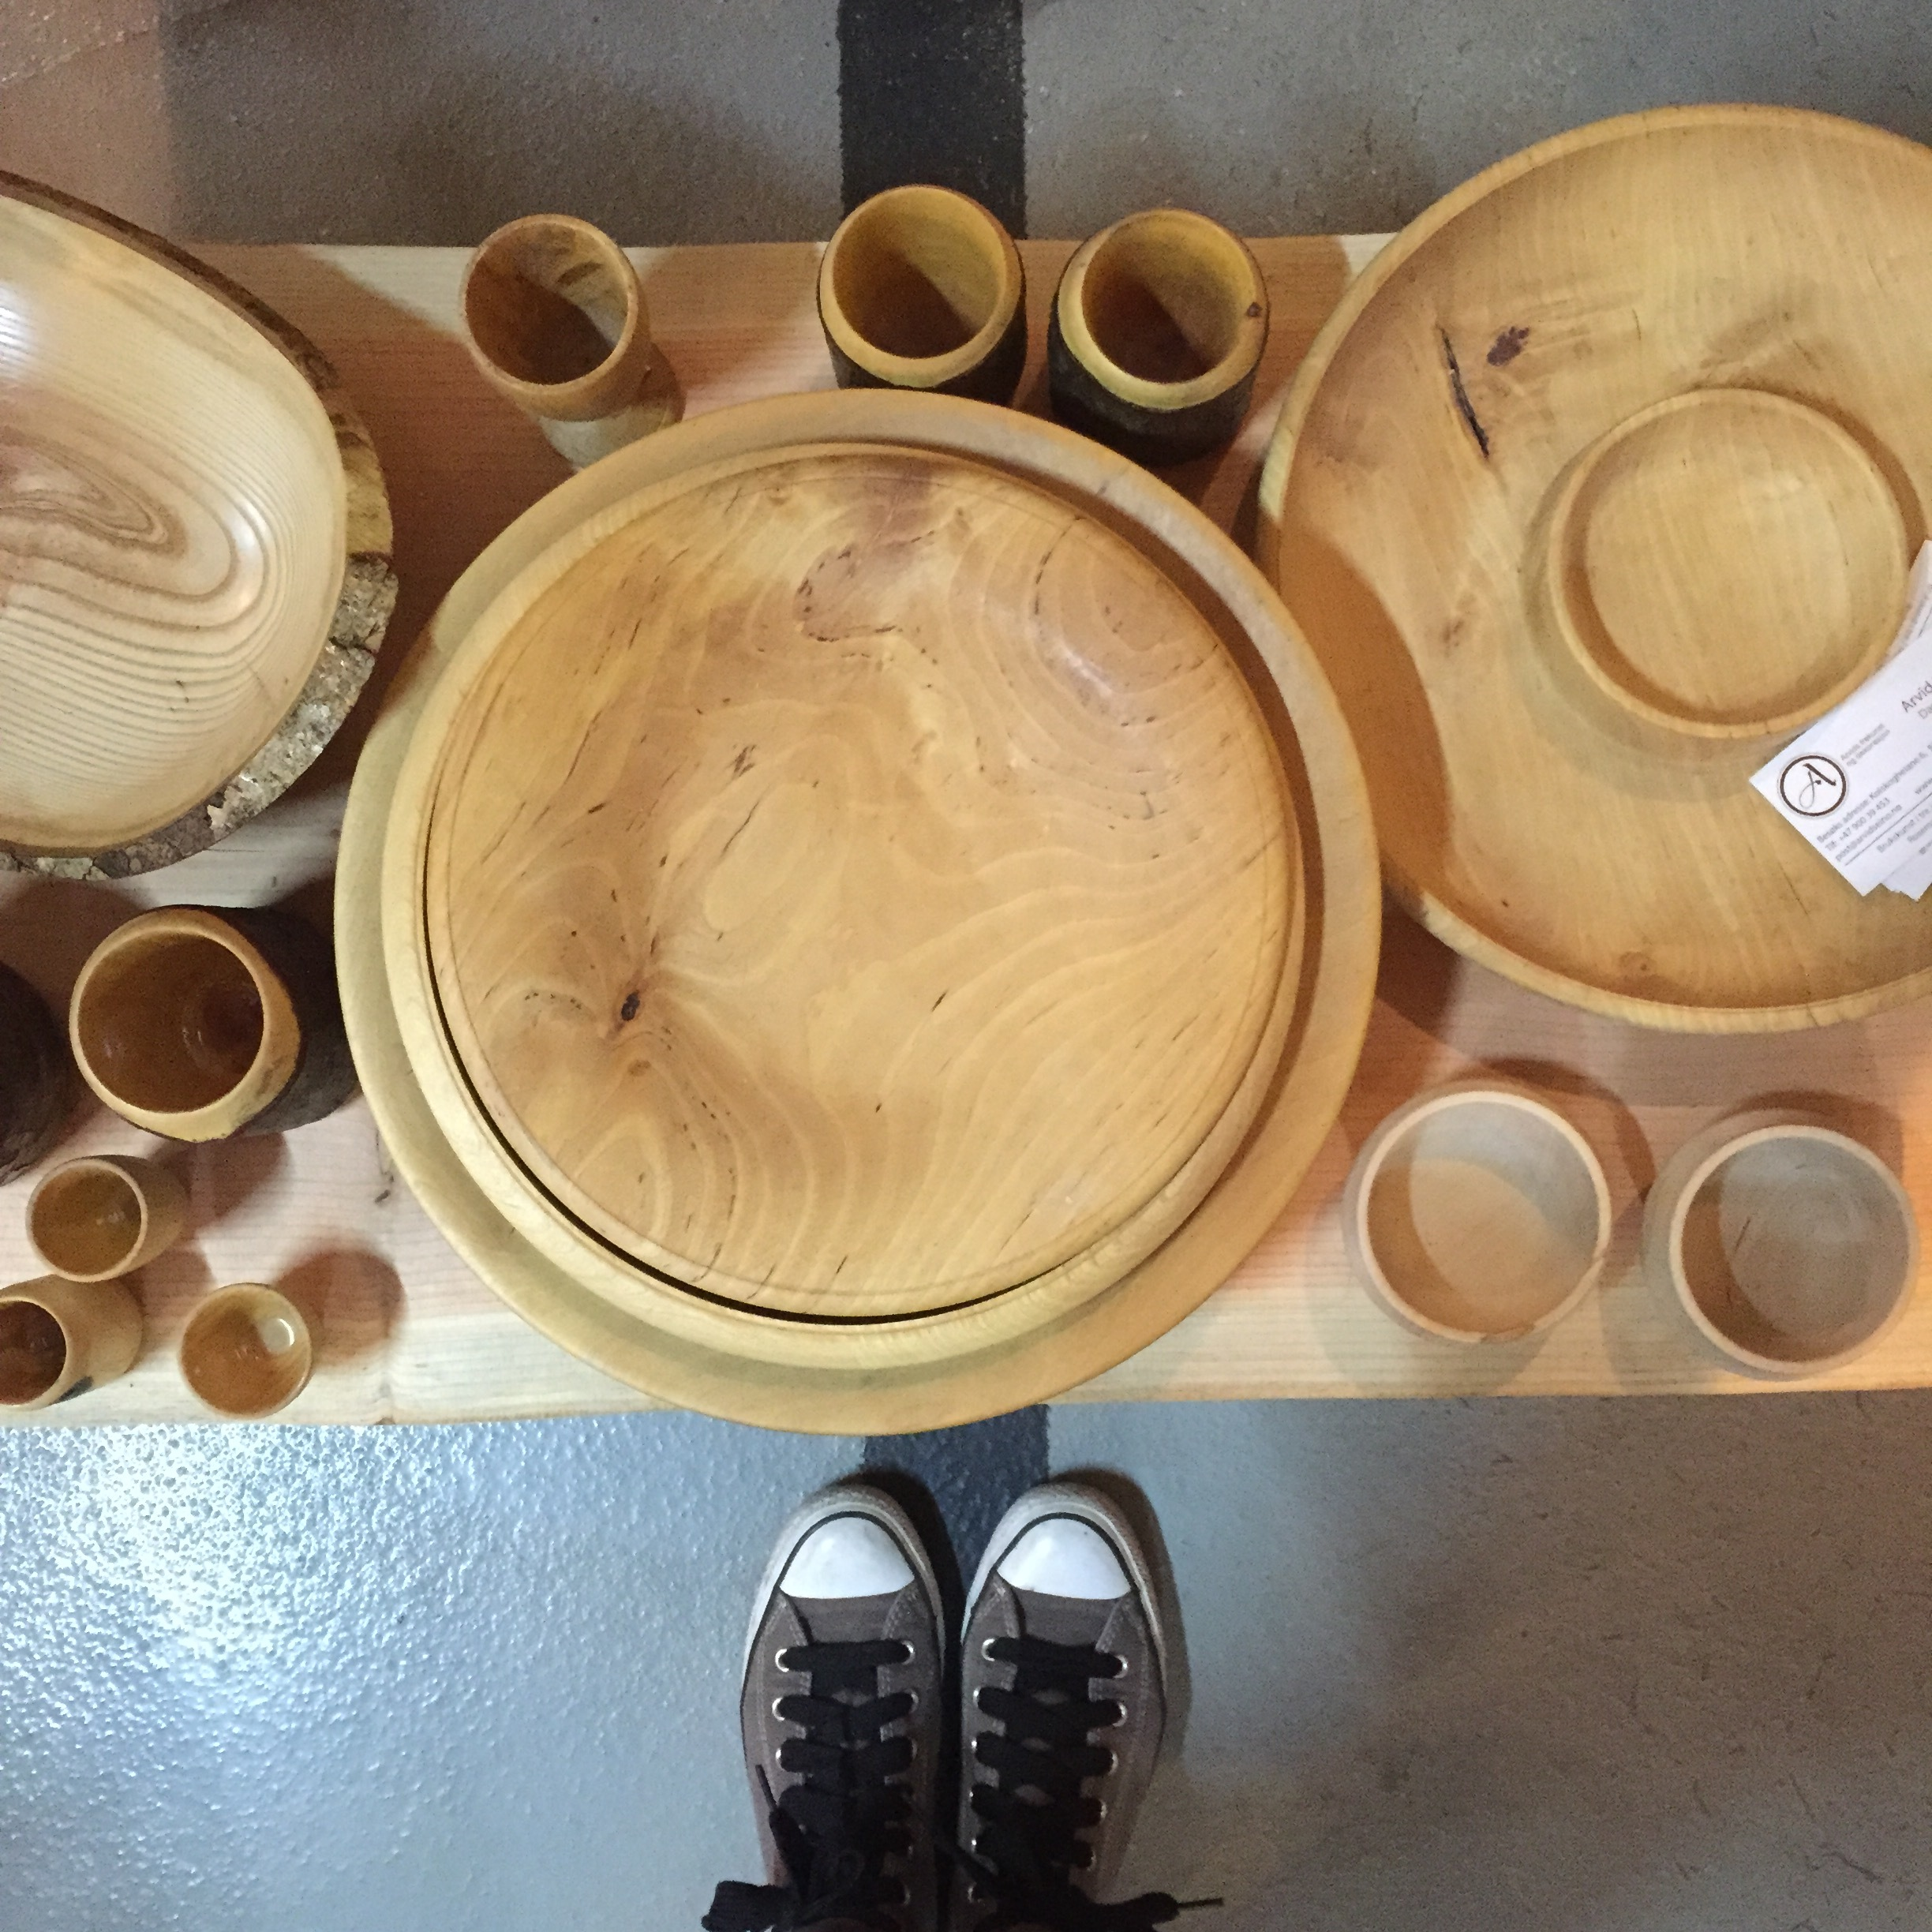 """The theme of the fair was """"Handmade is the new black"""", and focused on traditional techniques and natural materials in modern interiors."""